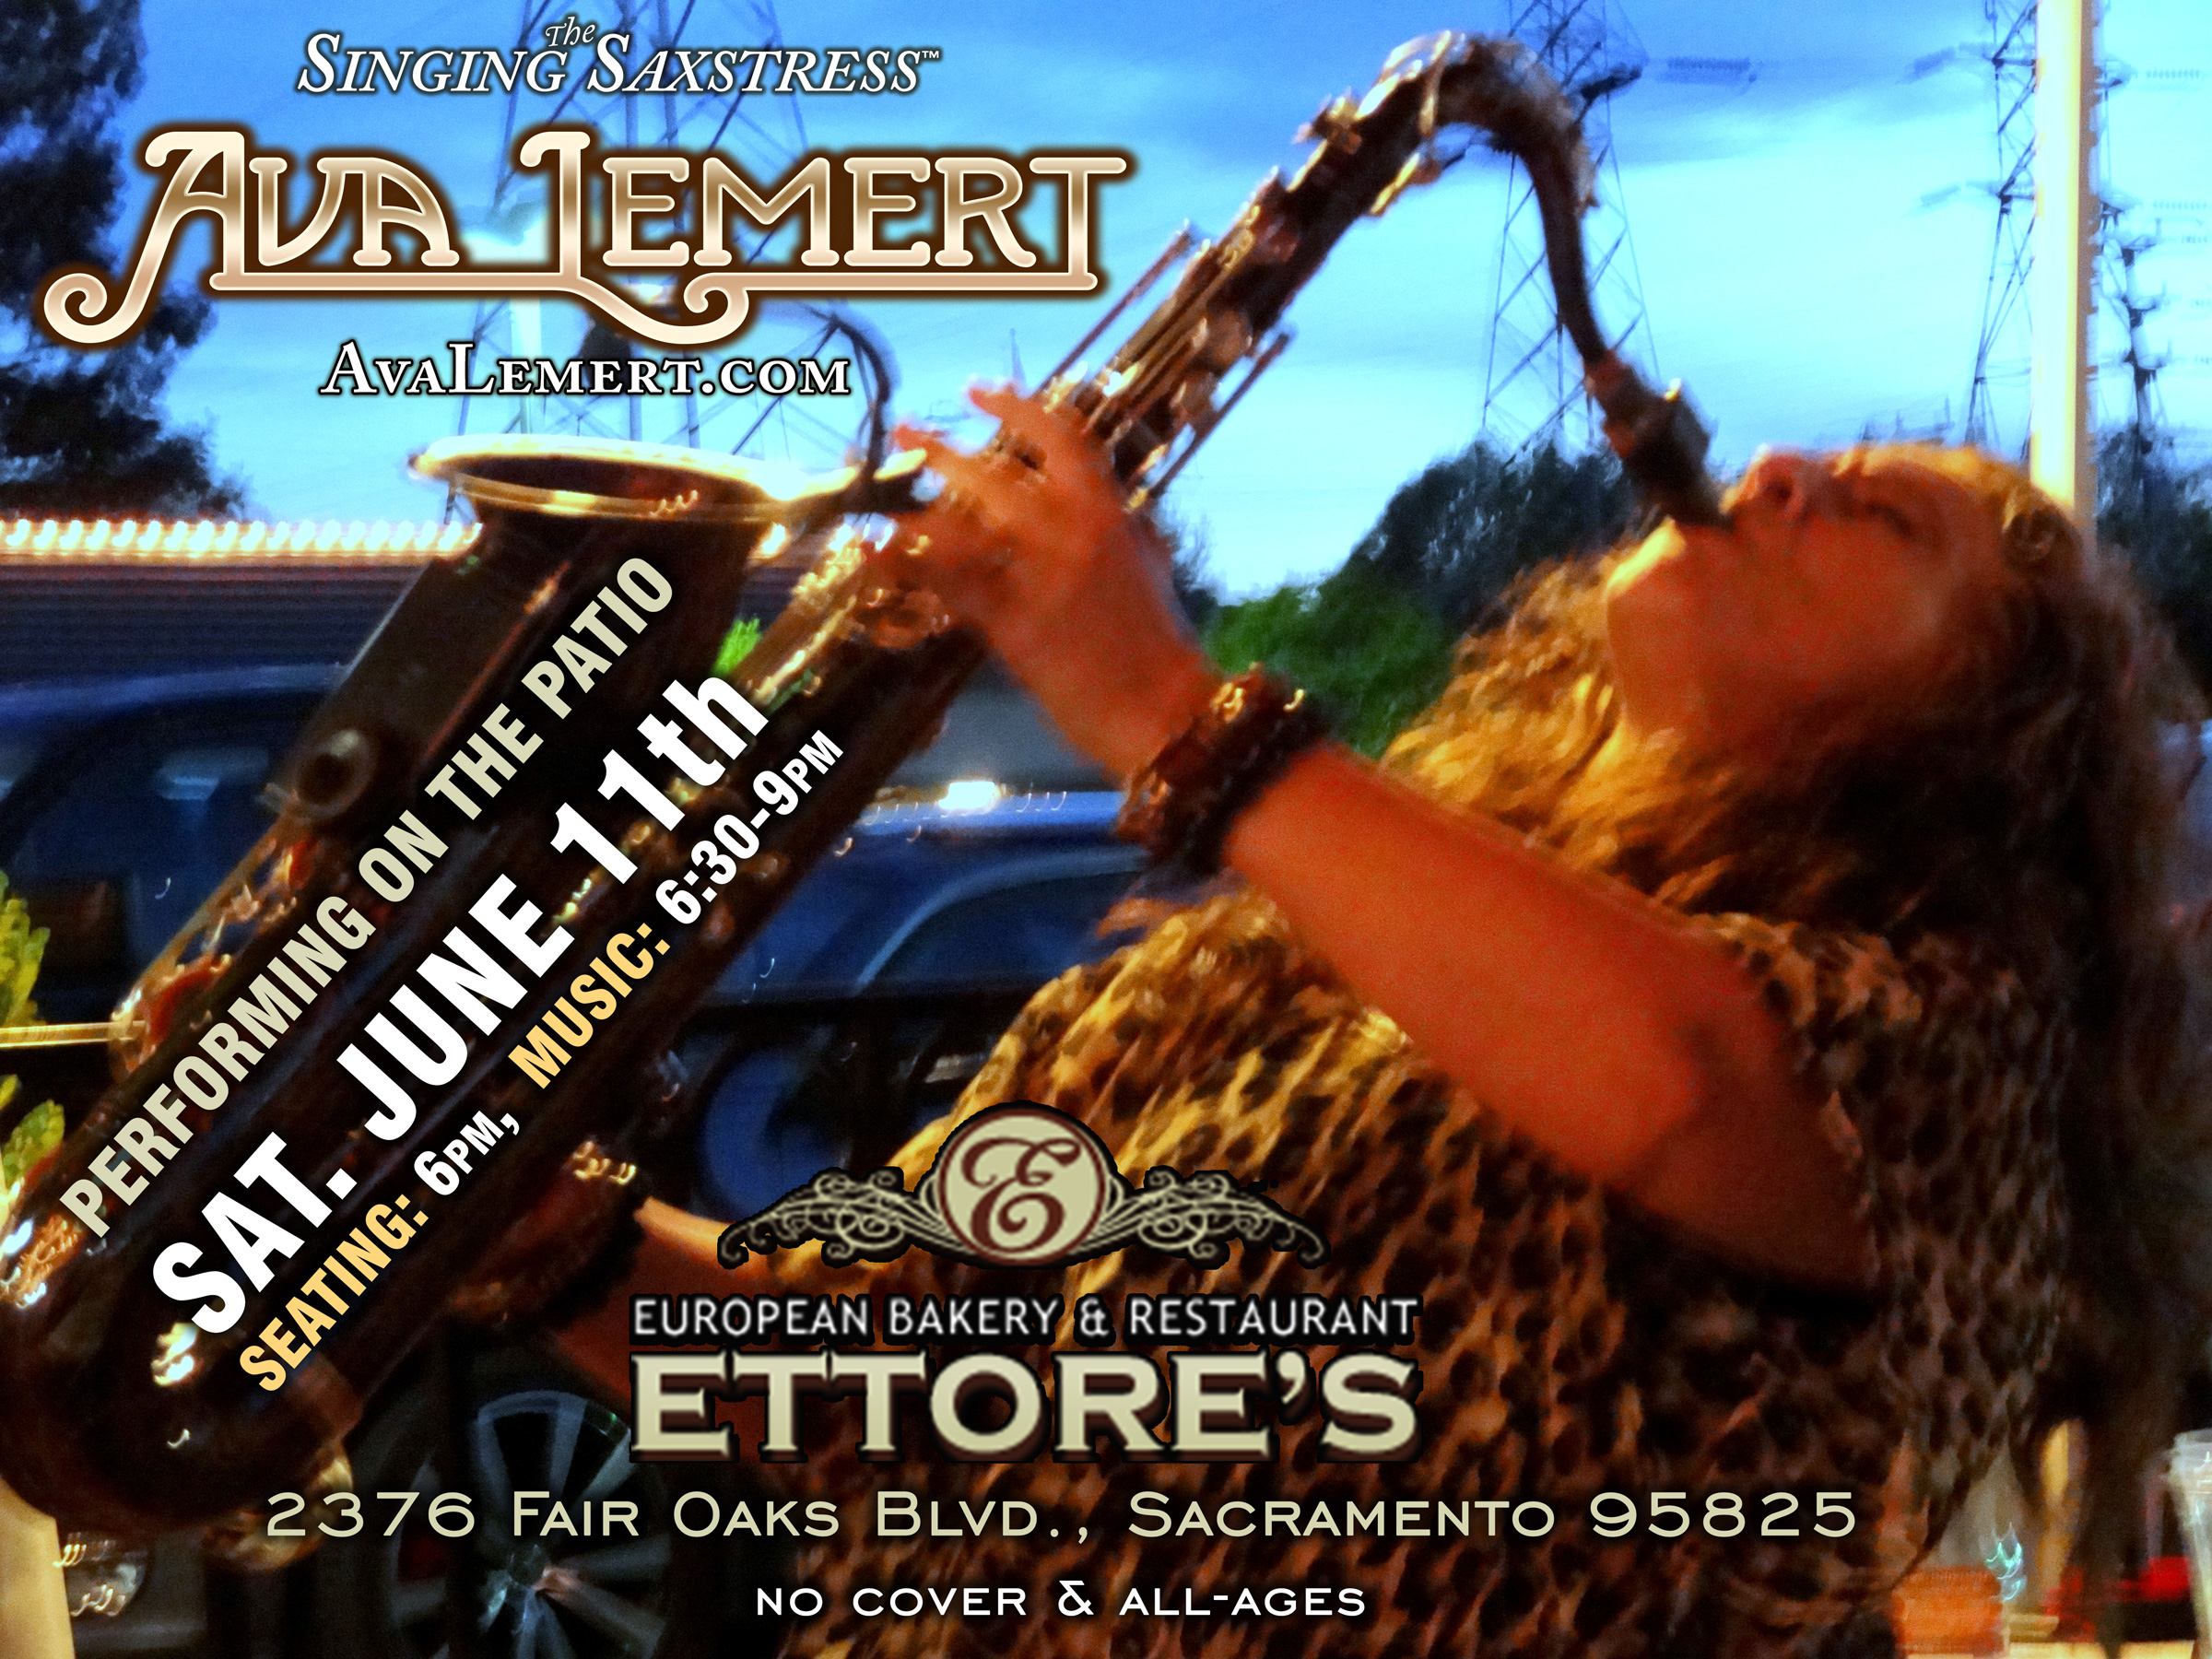 Ava Performing at Ettore's Sat. 6/11 6:30-9pm